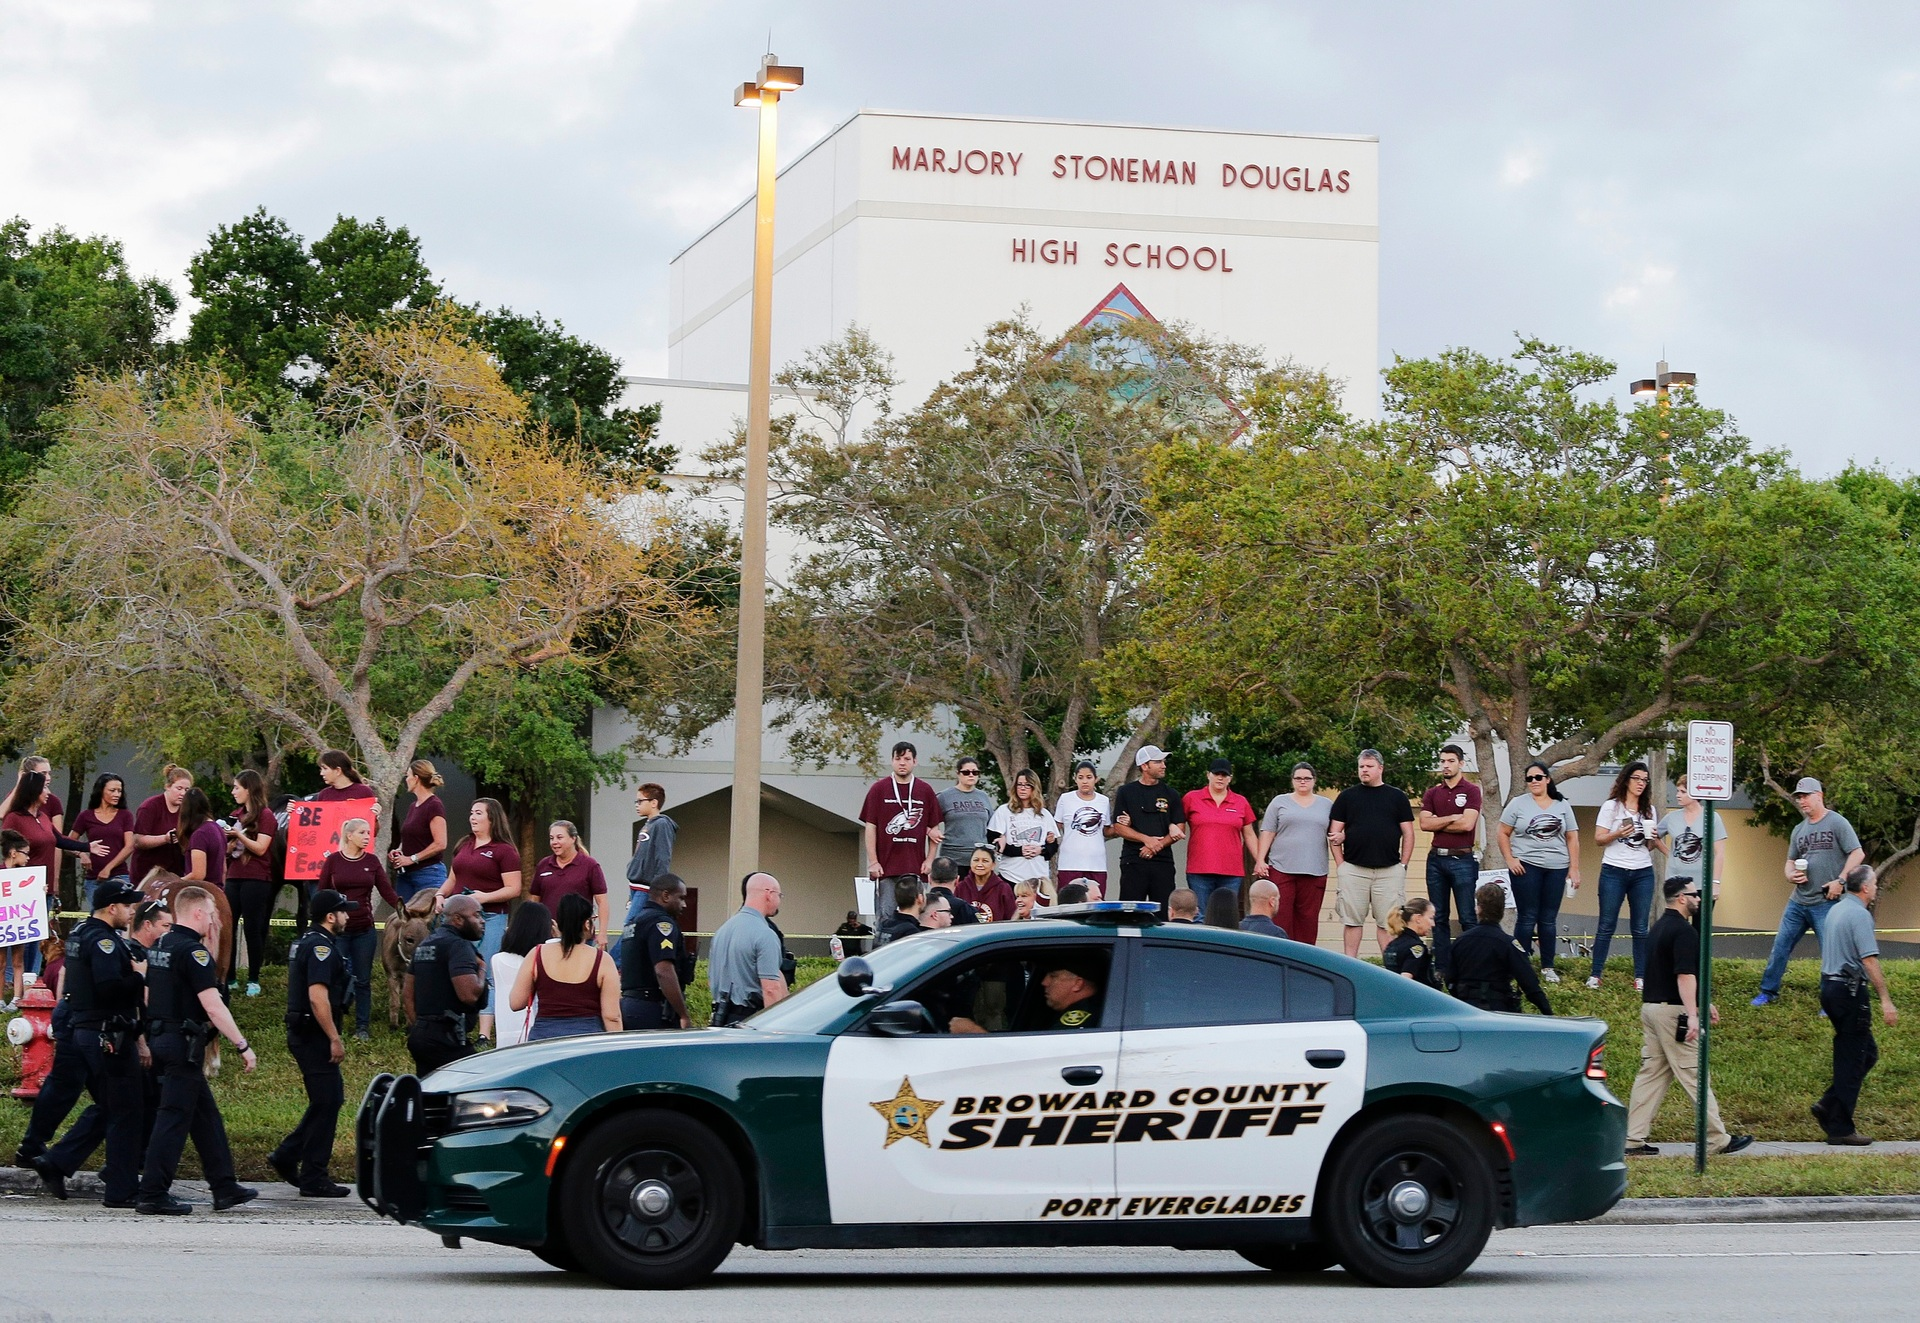 Second tragedy: Another Parkland student mourned